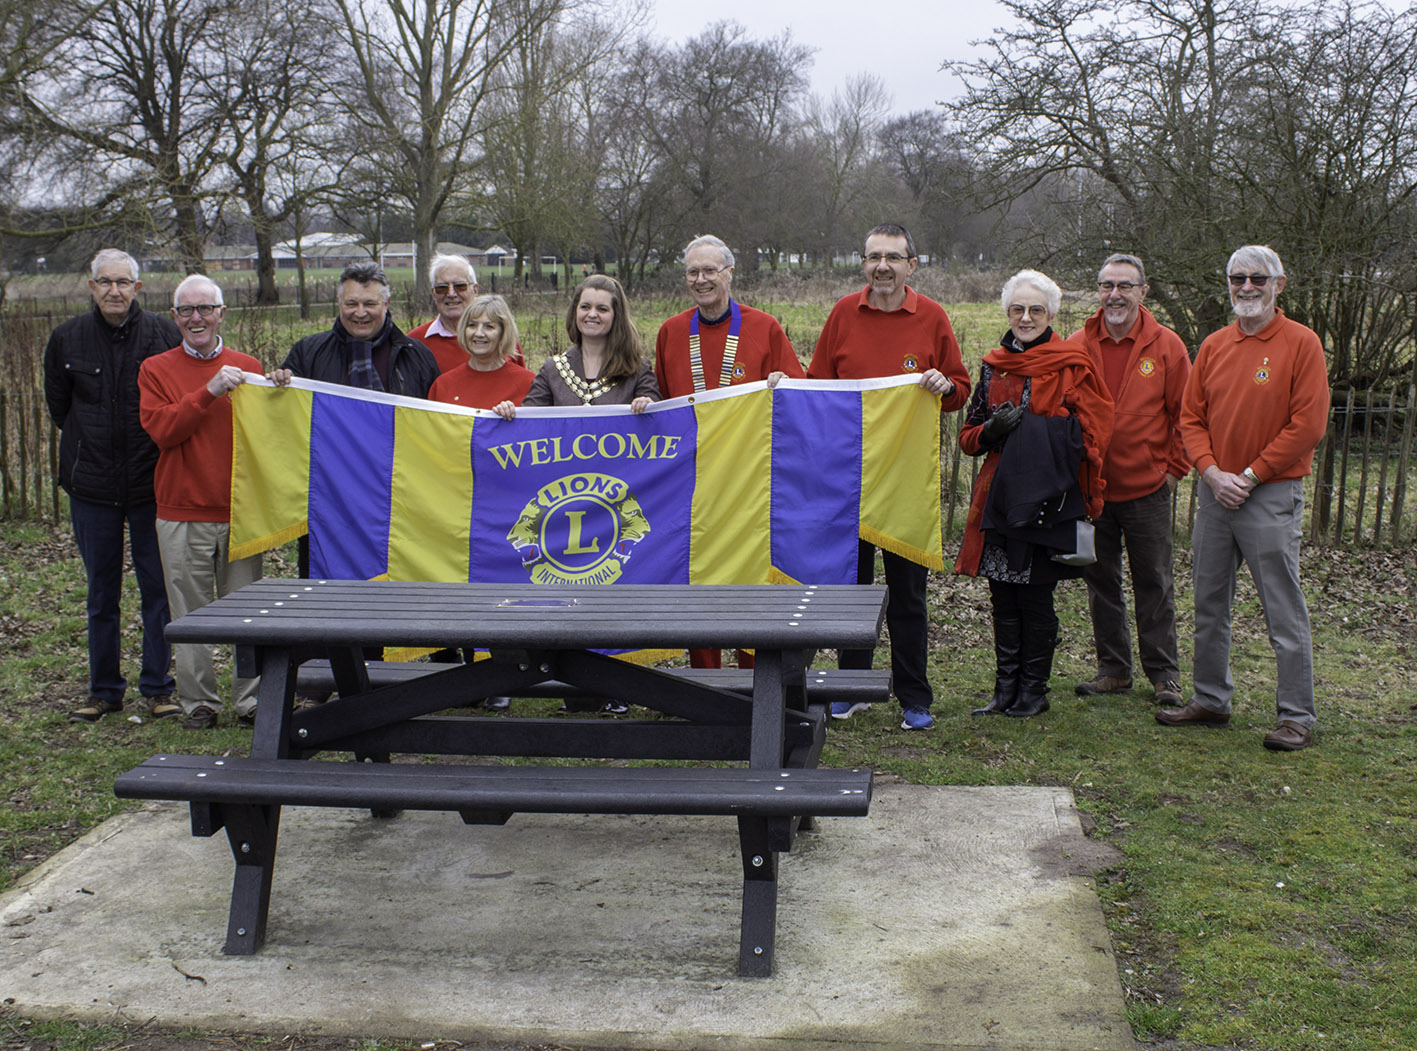 Lion President Chris Lambert and the Mayor of Beccles - Cllr Elfrede Brambley-Crawshaw in the centre surrounded by members of Beccles Lions Club and friends at the Presentation of the Picnic Benches.